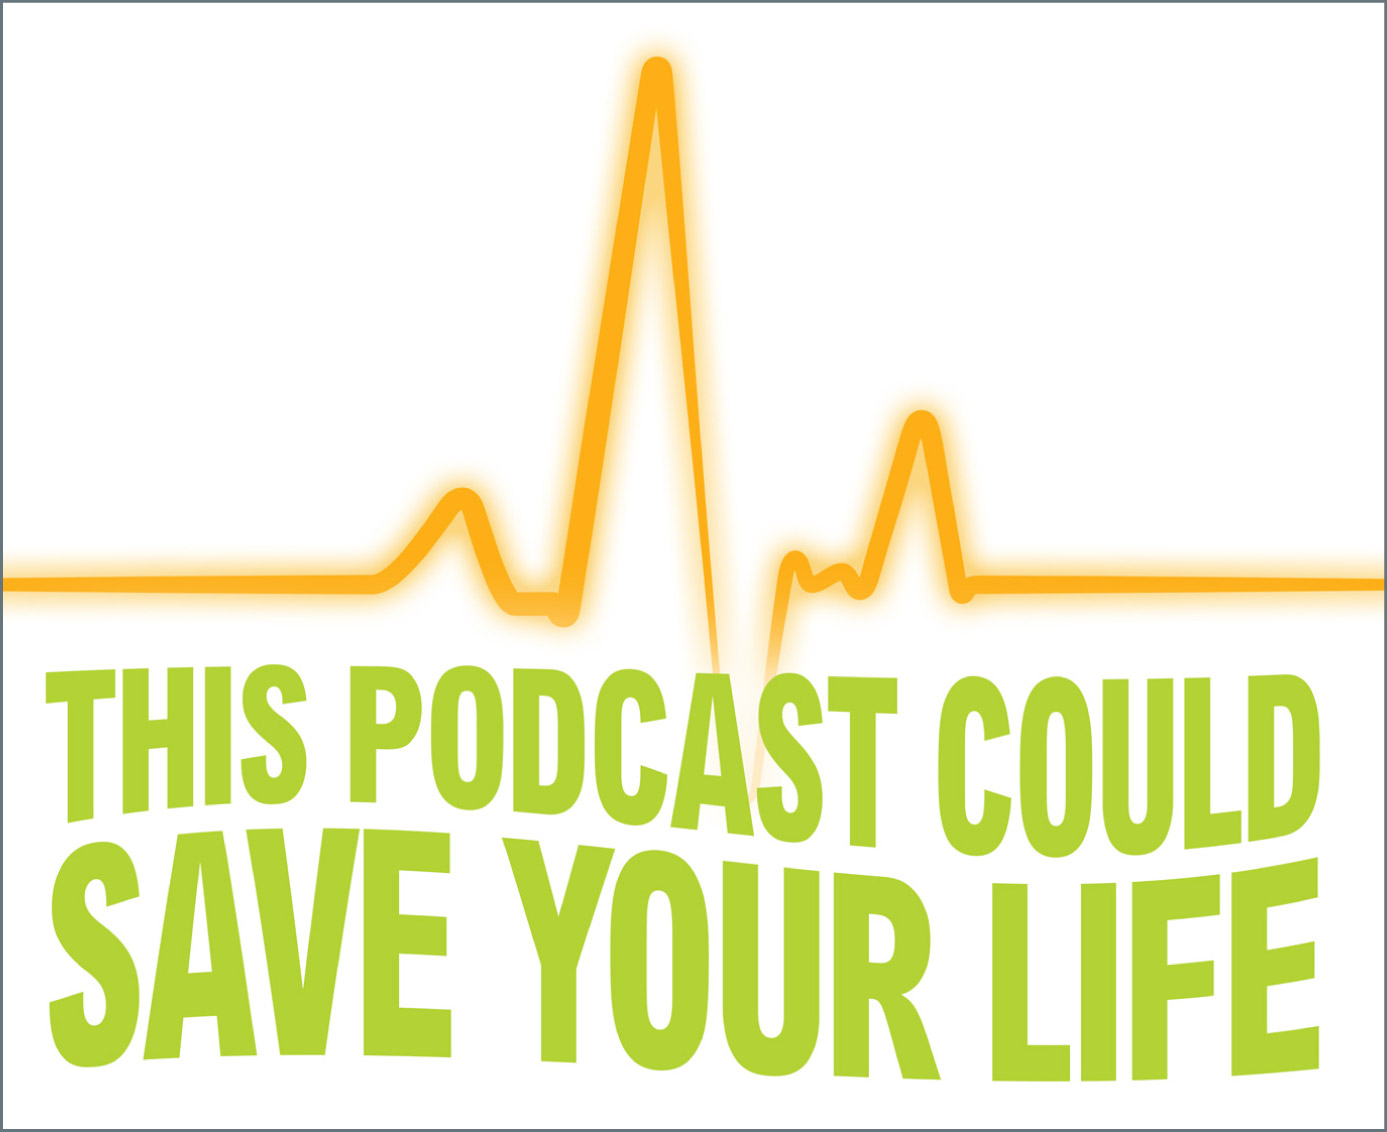 Logo: This podcast could save your life